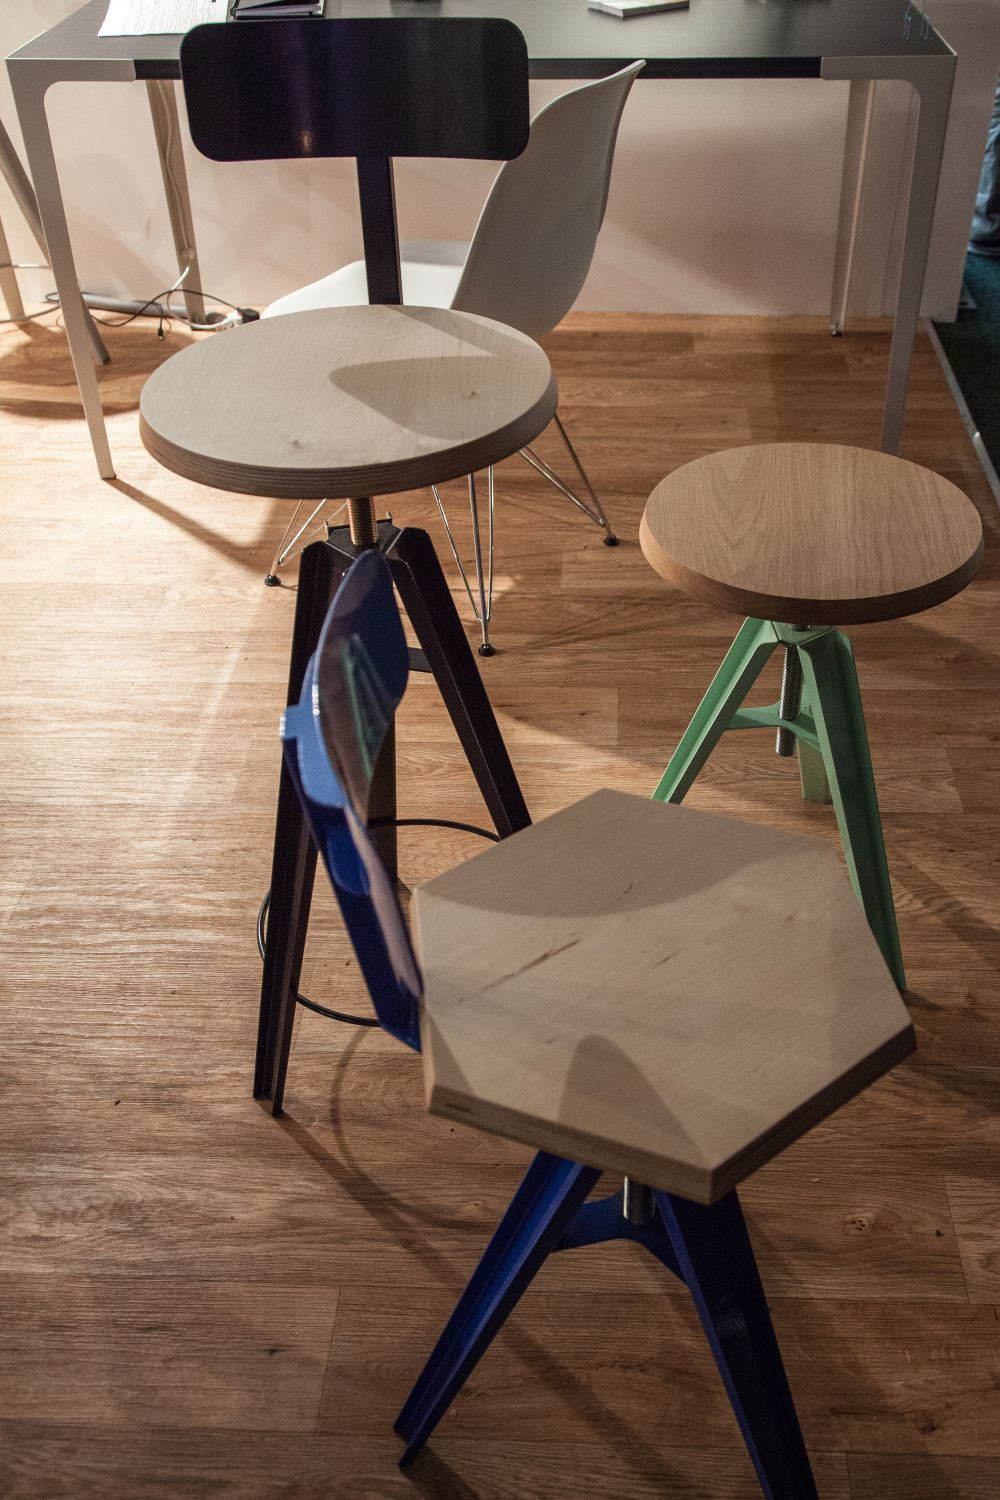 Small Side Tables Big On Style And Character | DIY furniture ...